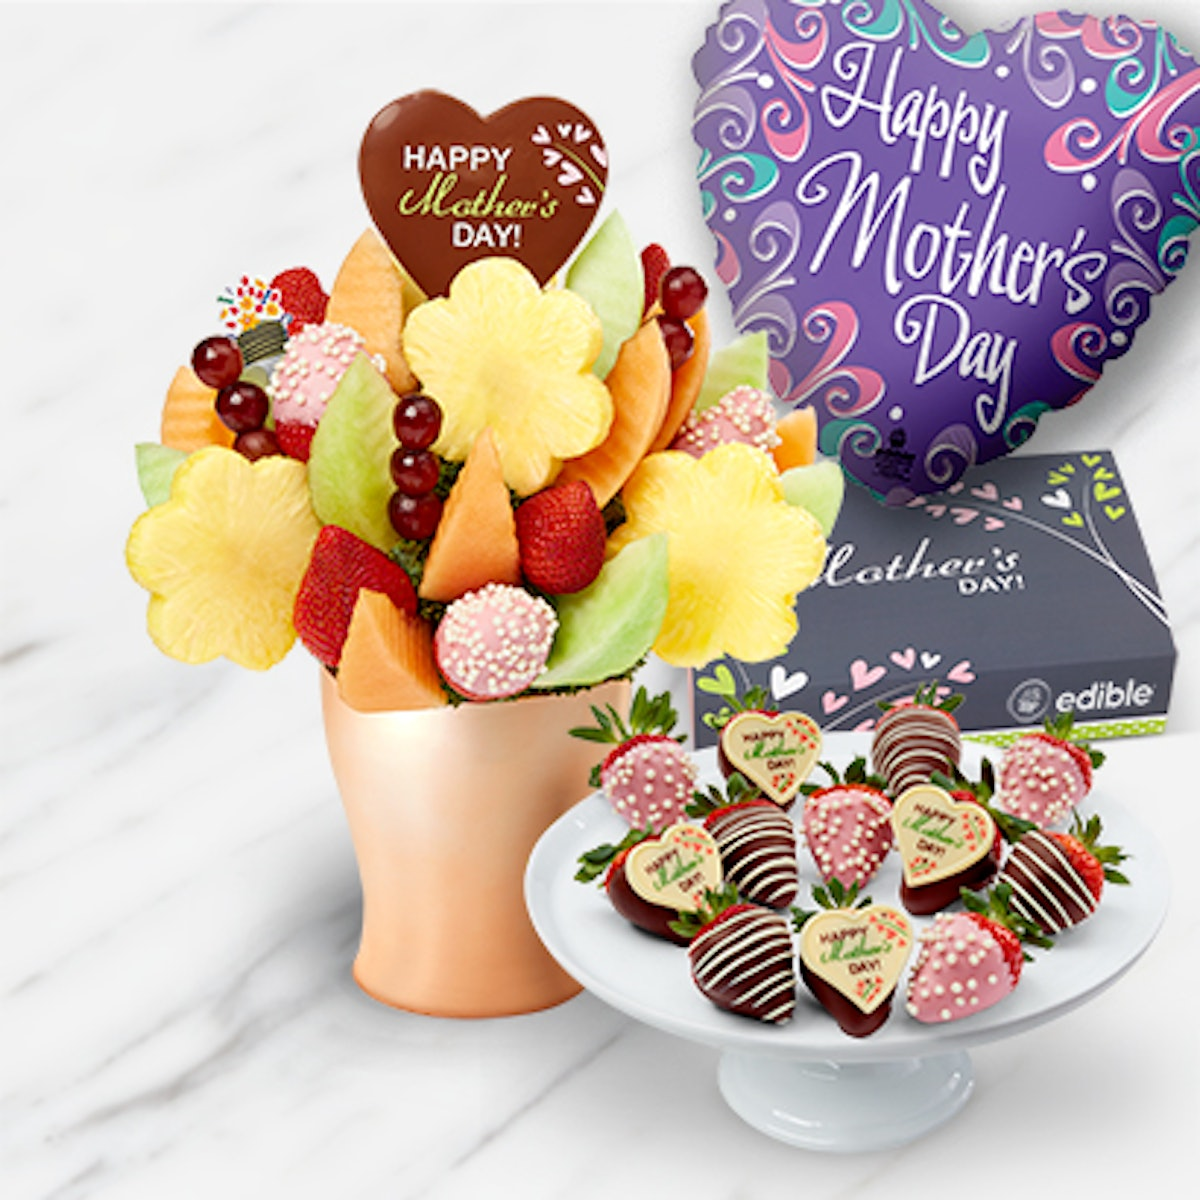 Is it safe to send an Edible Arrangement for Mother's Day? Here's what to know.